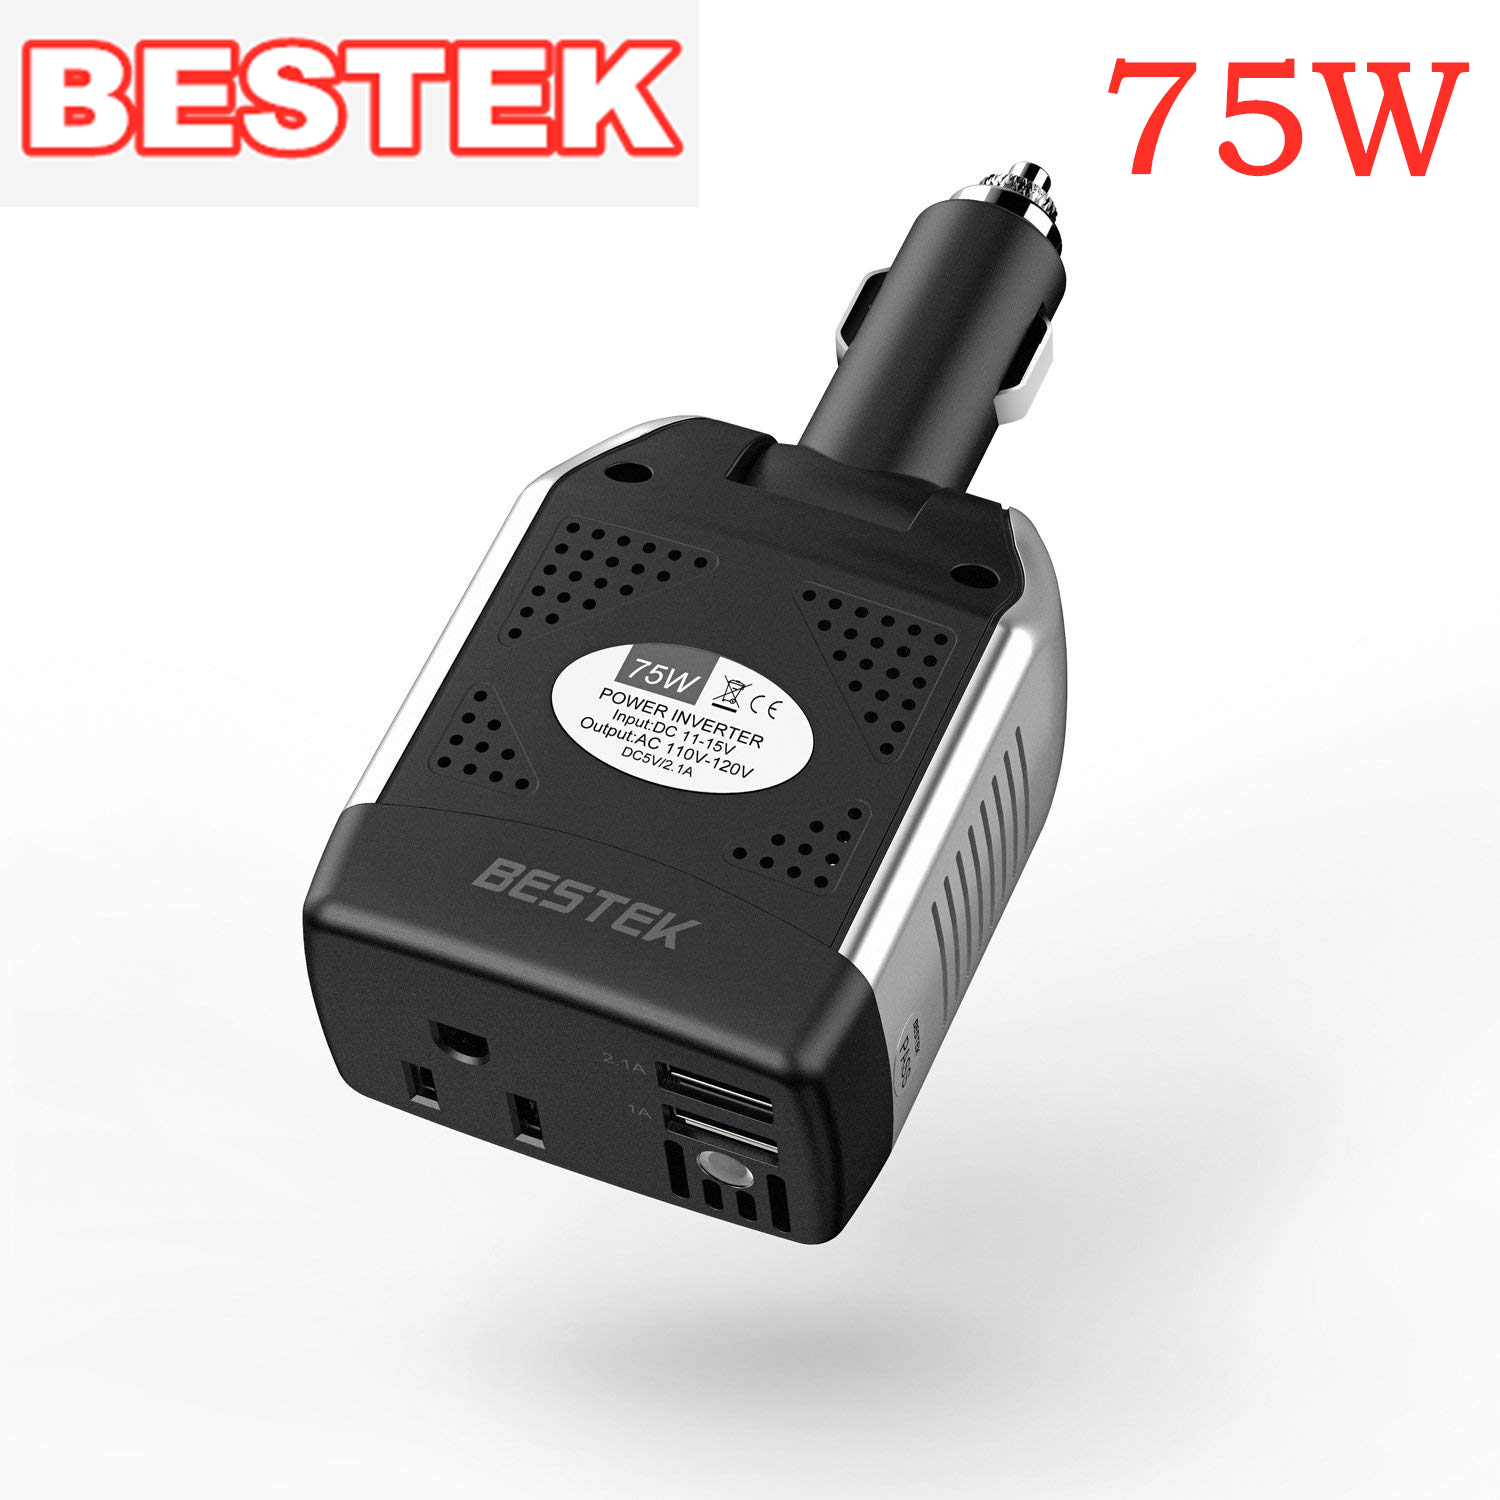 Ac Converter Bestek 75w Power Inverter Dc 12v To 110v Ac Car Inverter Power Converter